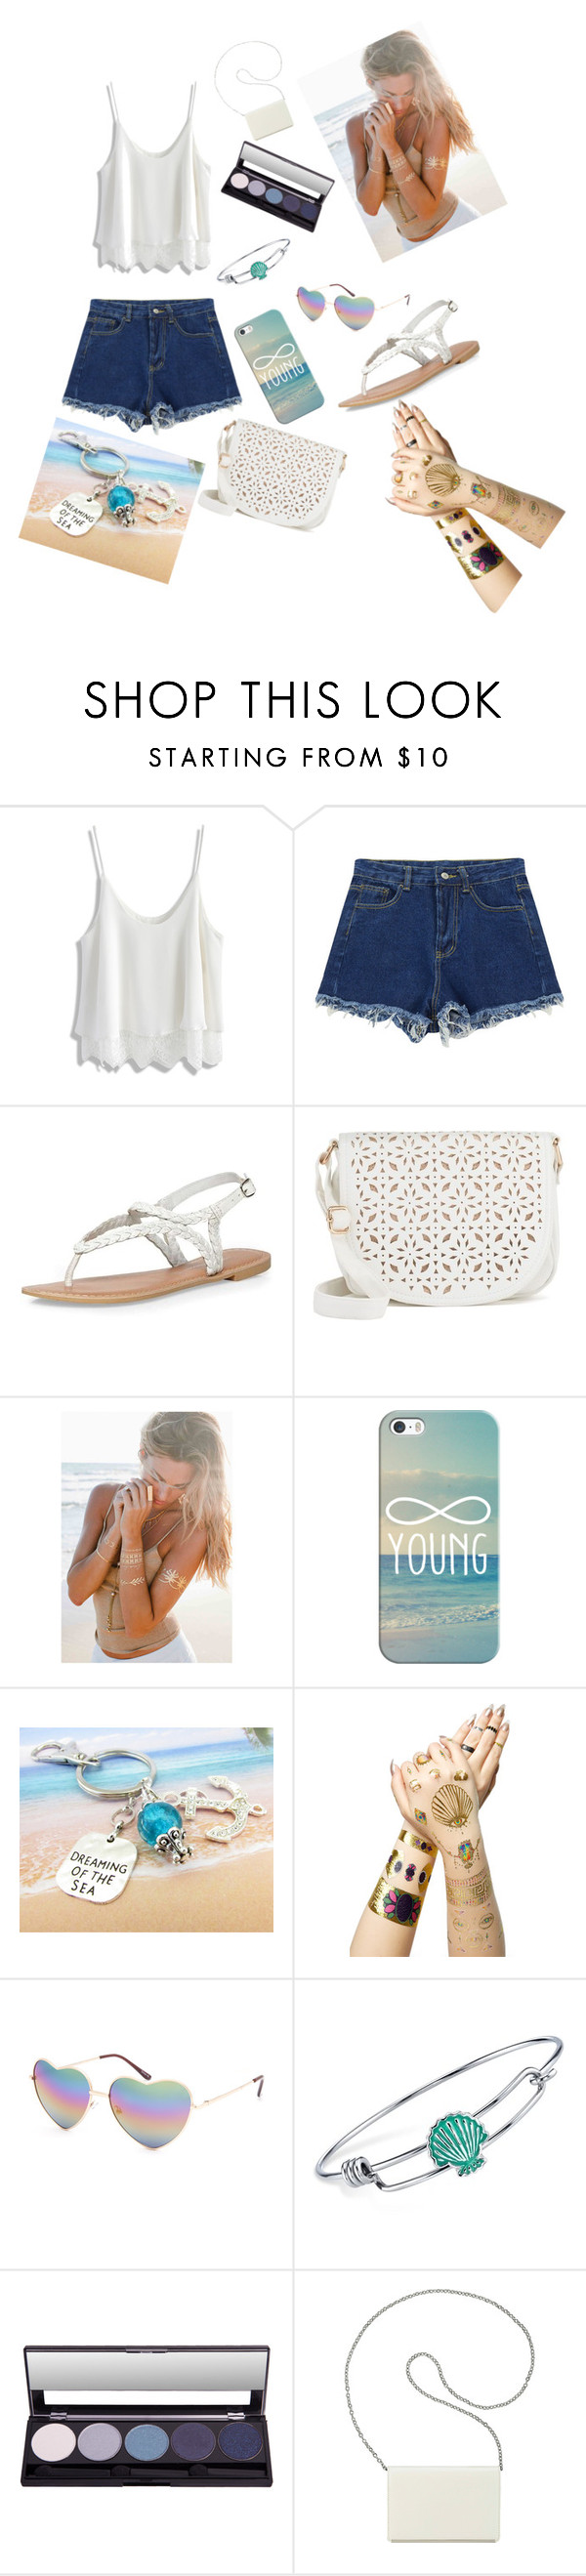 """""""Untitled #19"""" by esmestar04 ❤ liked on Polyvore featuring Chicwish, Chicnova Fashion, Dorothy Perkins, Under One Sky, Casetify, Tattify, Full Tilt, Disney and Nine West"""